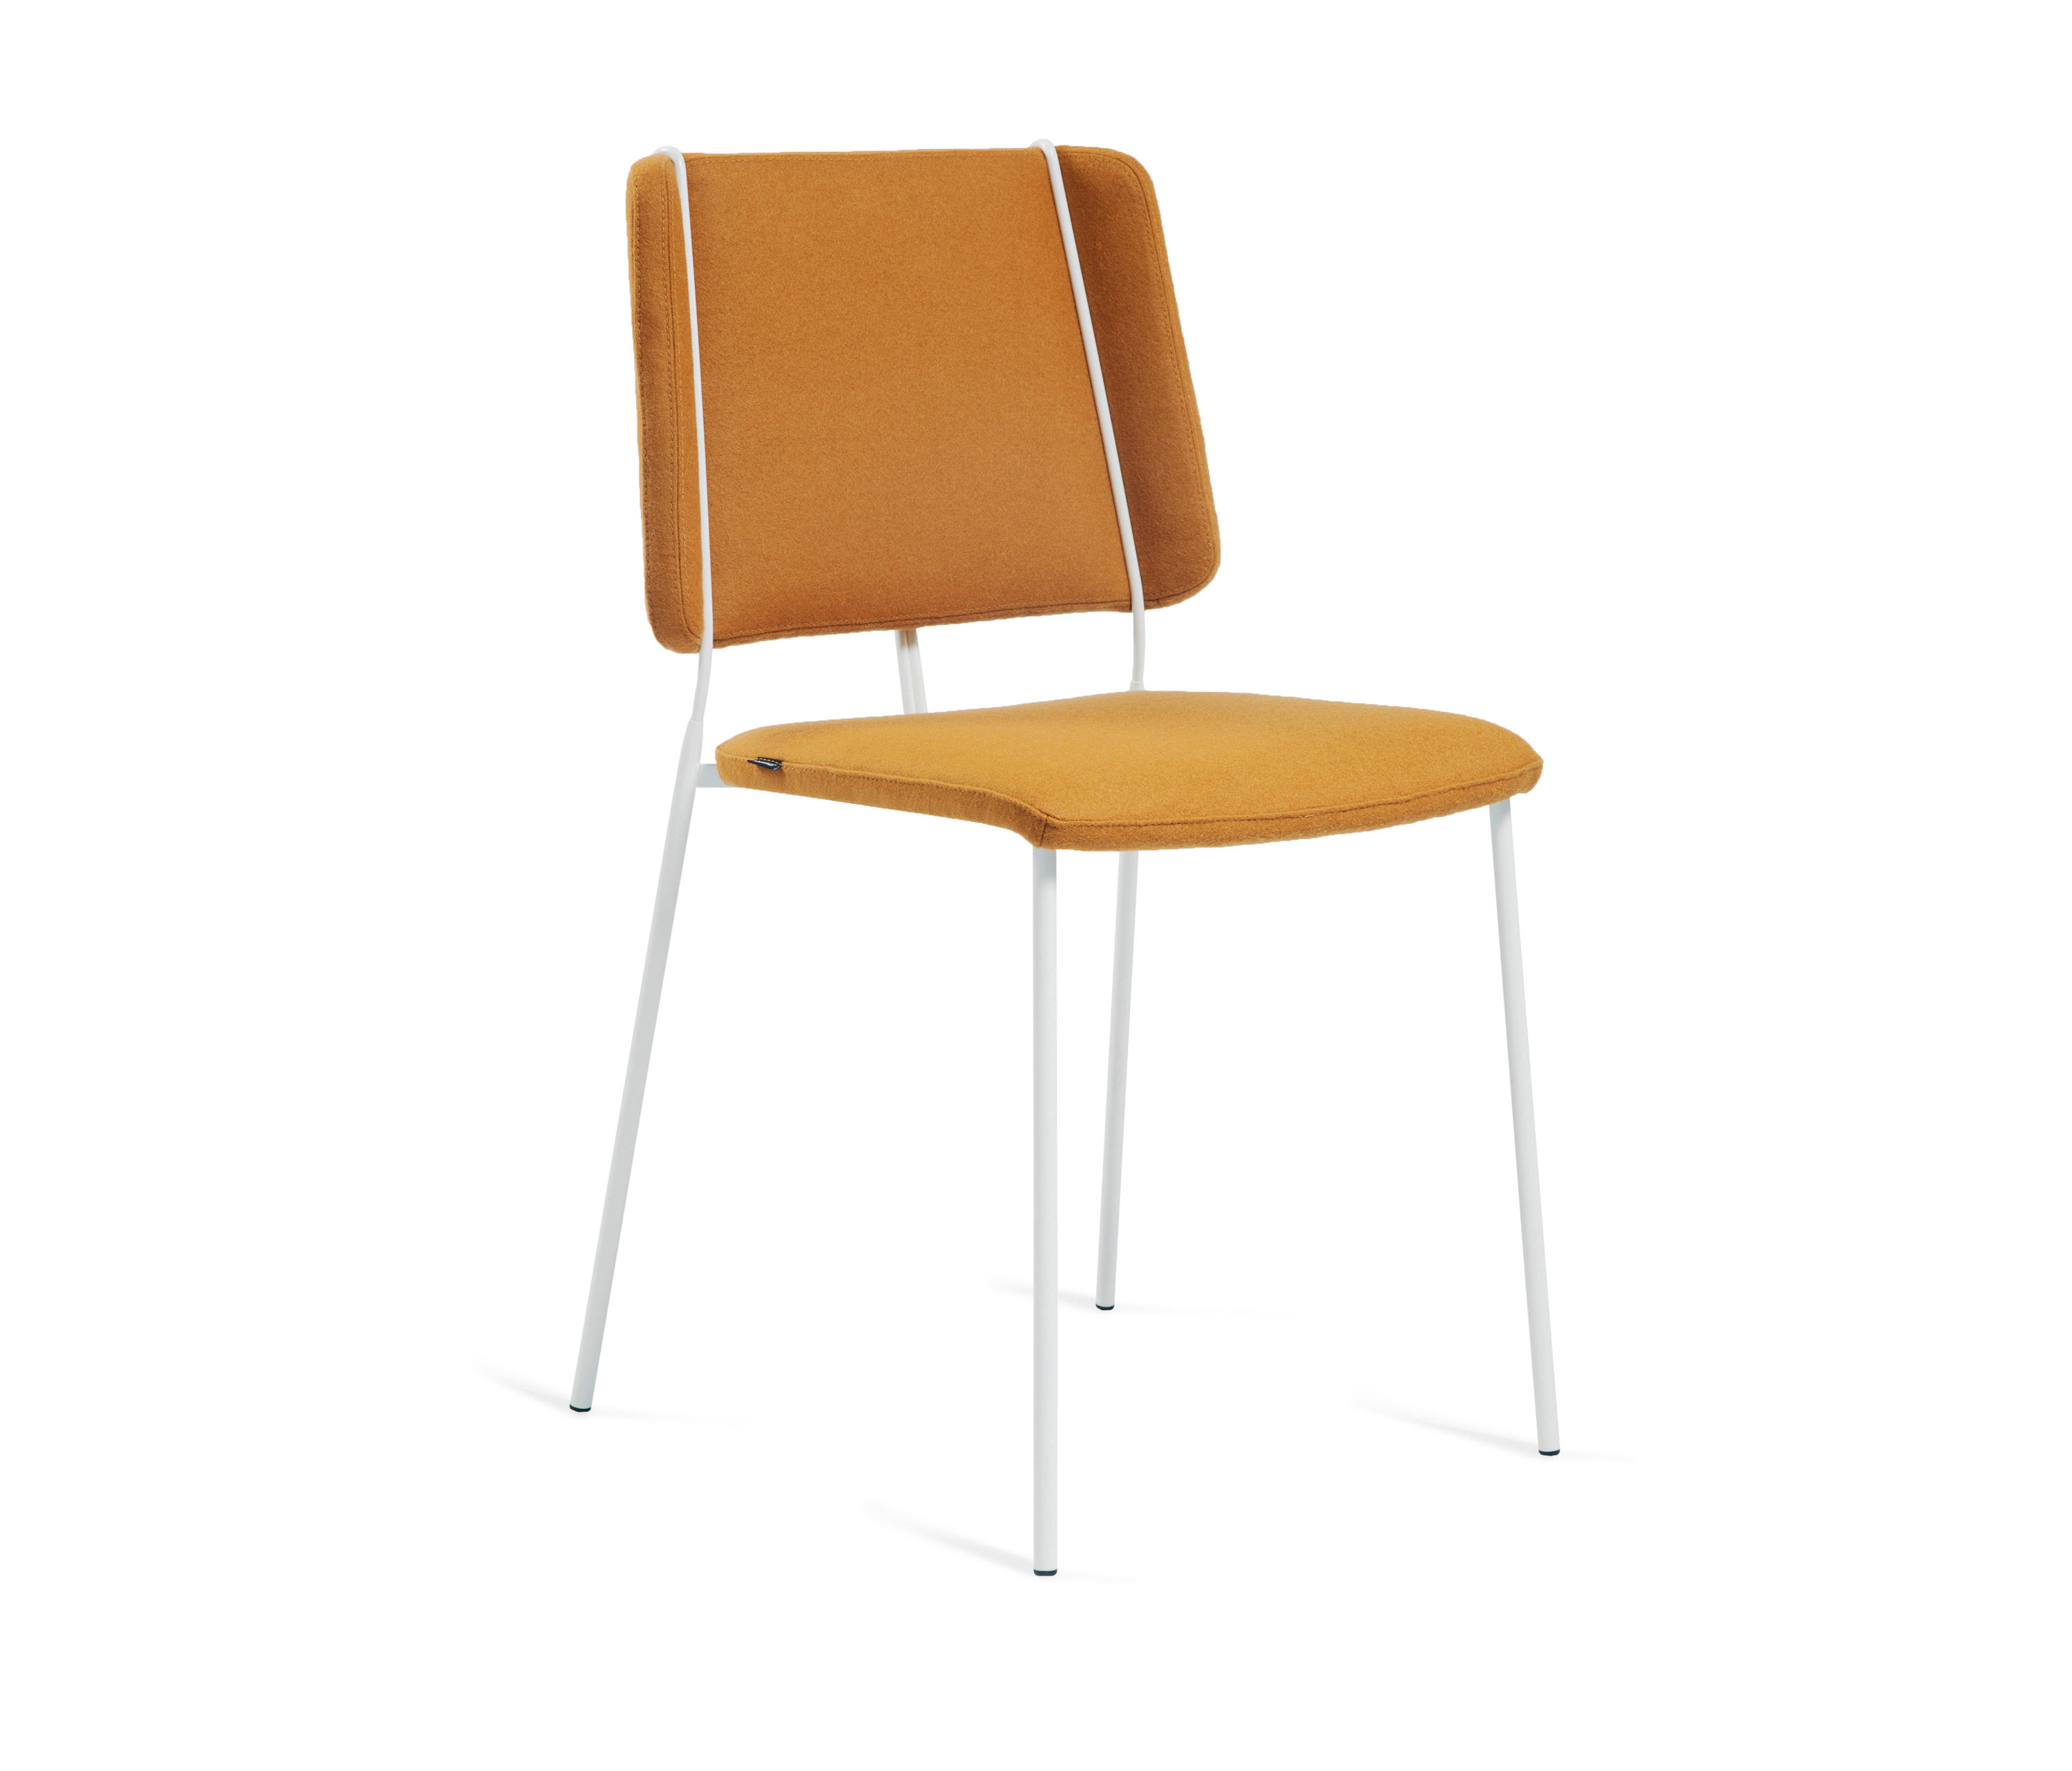 FRANKIE Restaurant Chairs From Johanson Architonic